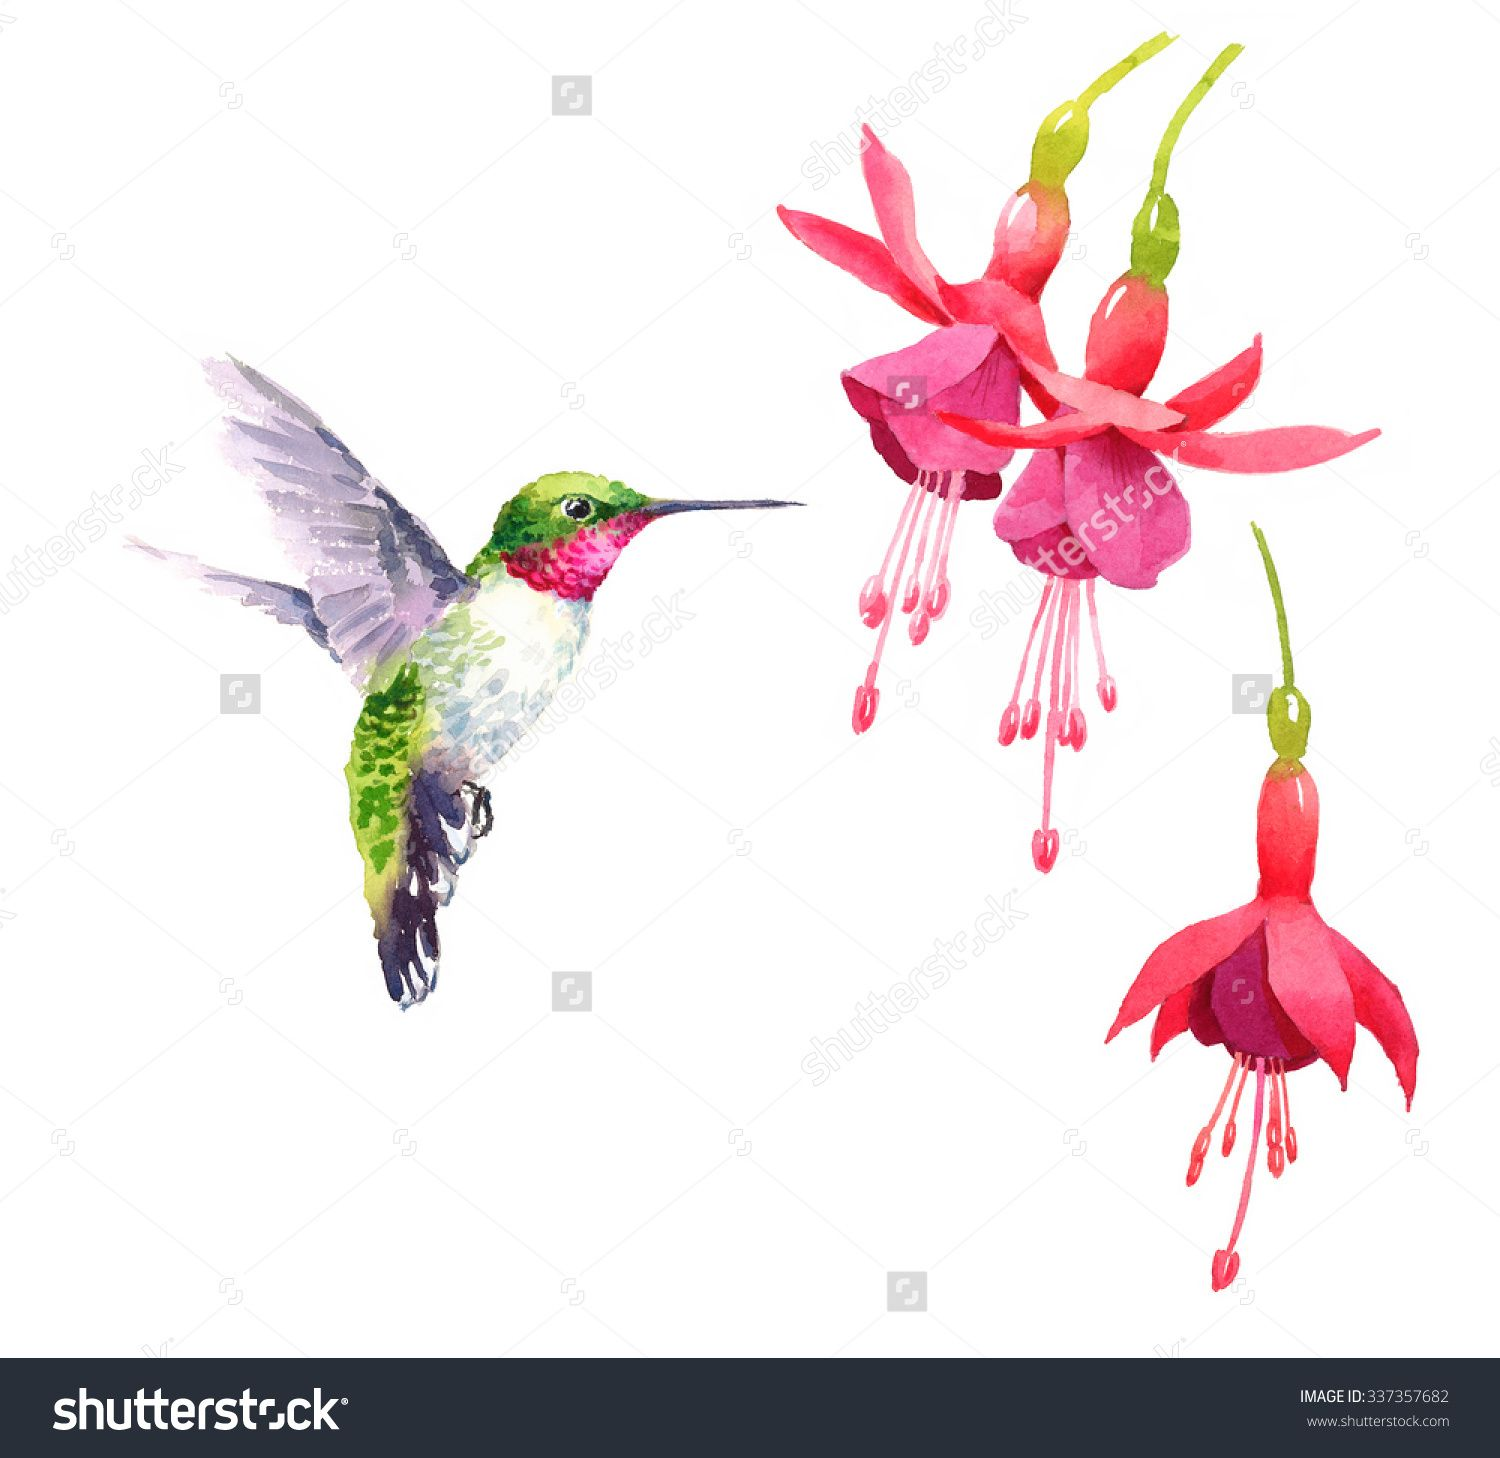 Stock Photo Watercolor Bird Hummingbird Flying Around The Fuchsia Flowers Hand Drawn Summer Watercolor Hummingbird Watercolor Bird Watercolor Flowers Paintings